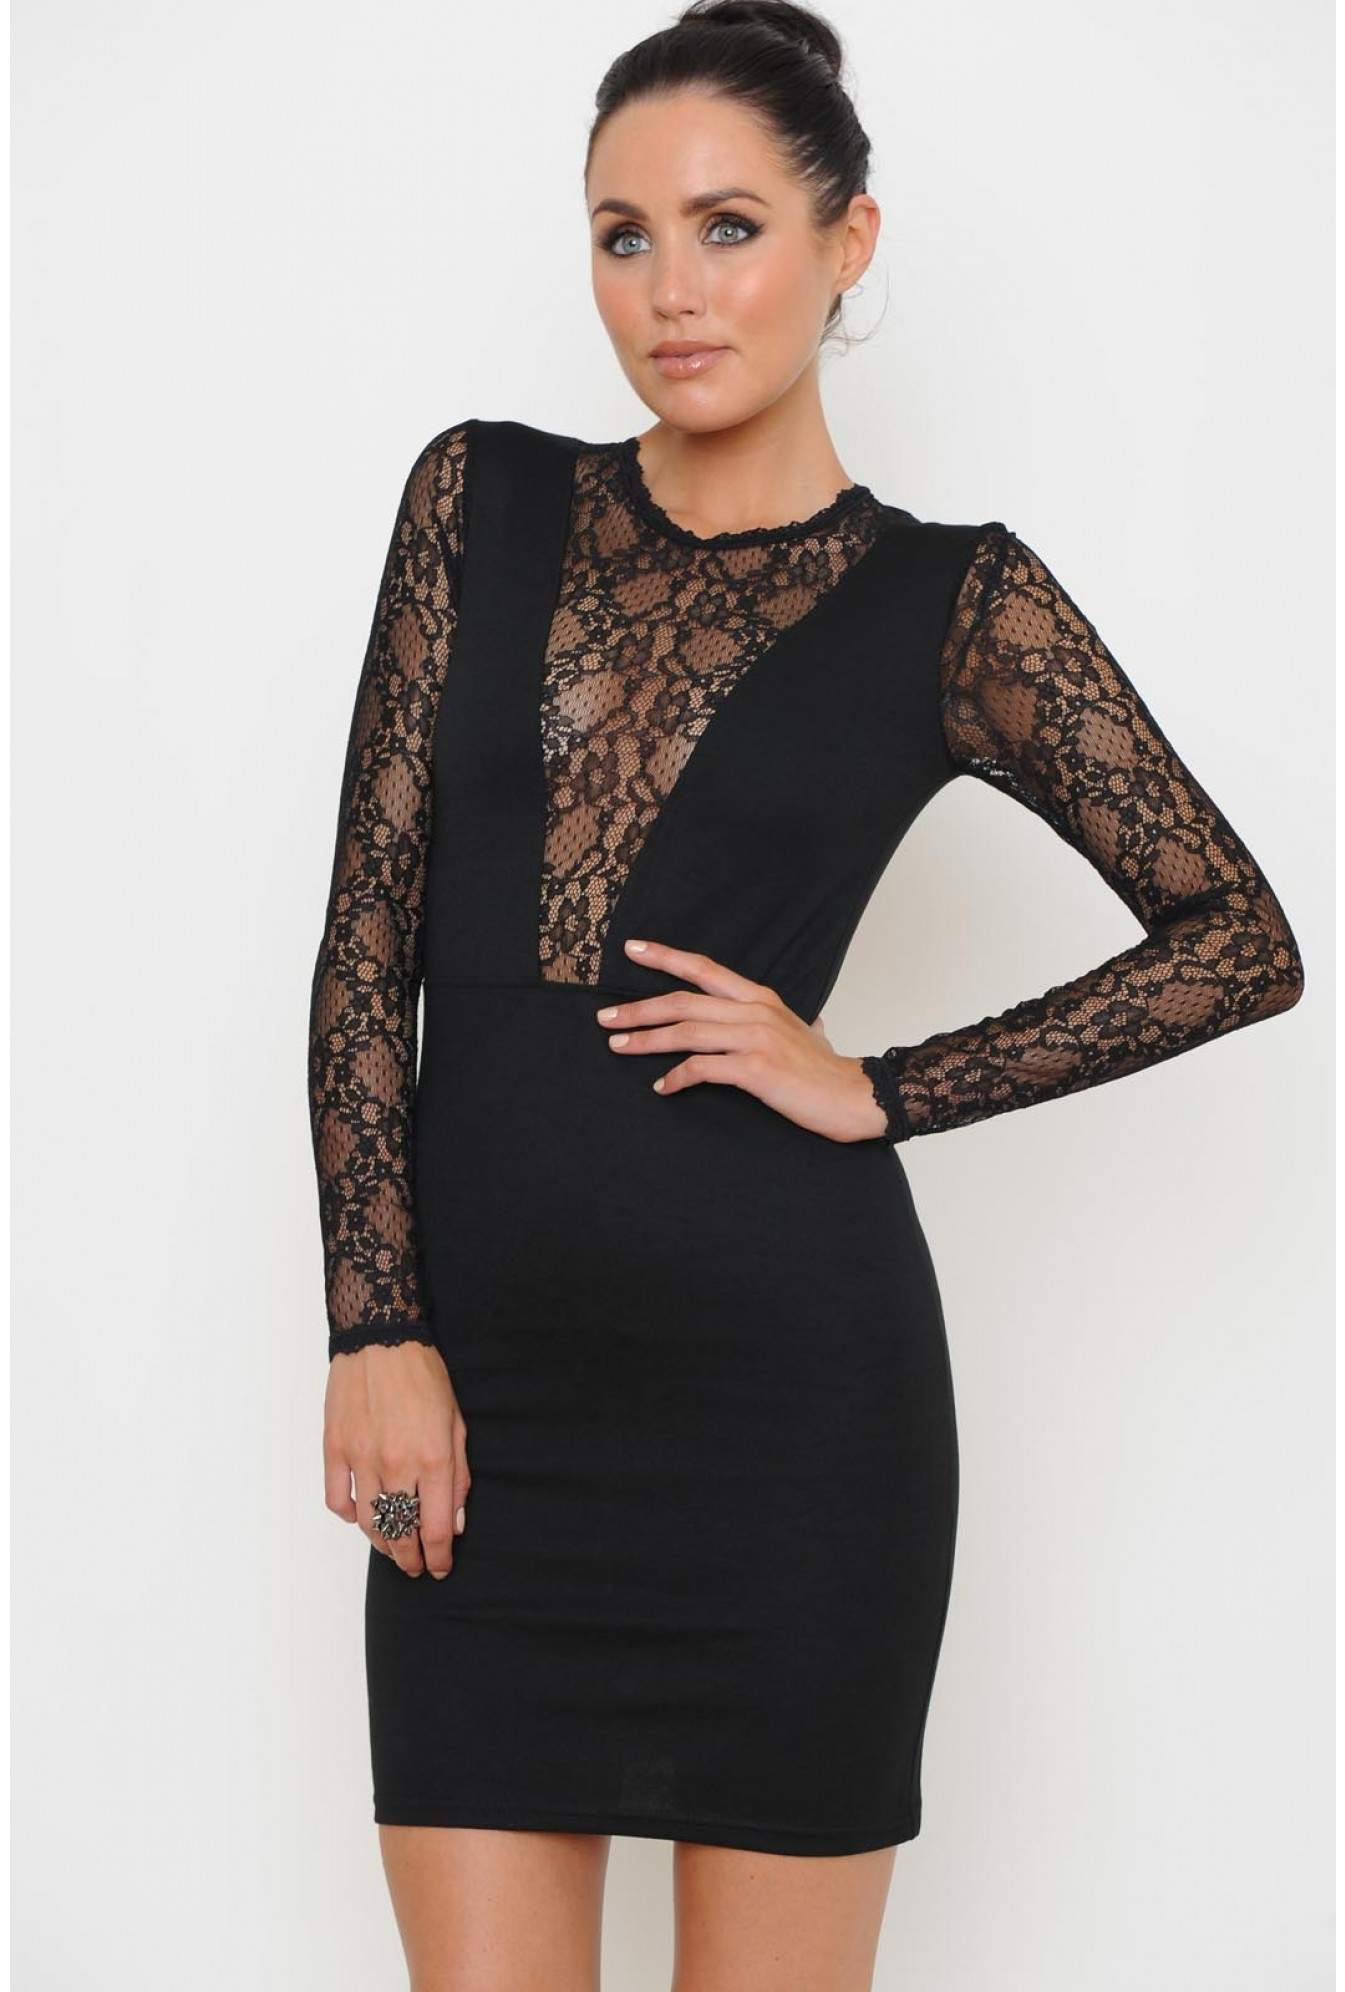 3a8abf27 Ursulla Lace Panel Bodycon Dress in Black | iCLOTHING